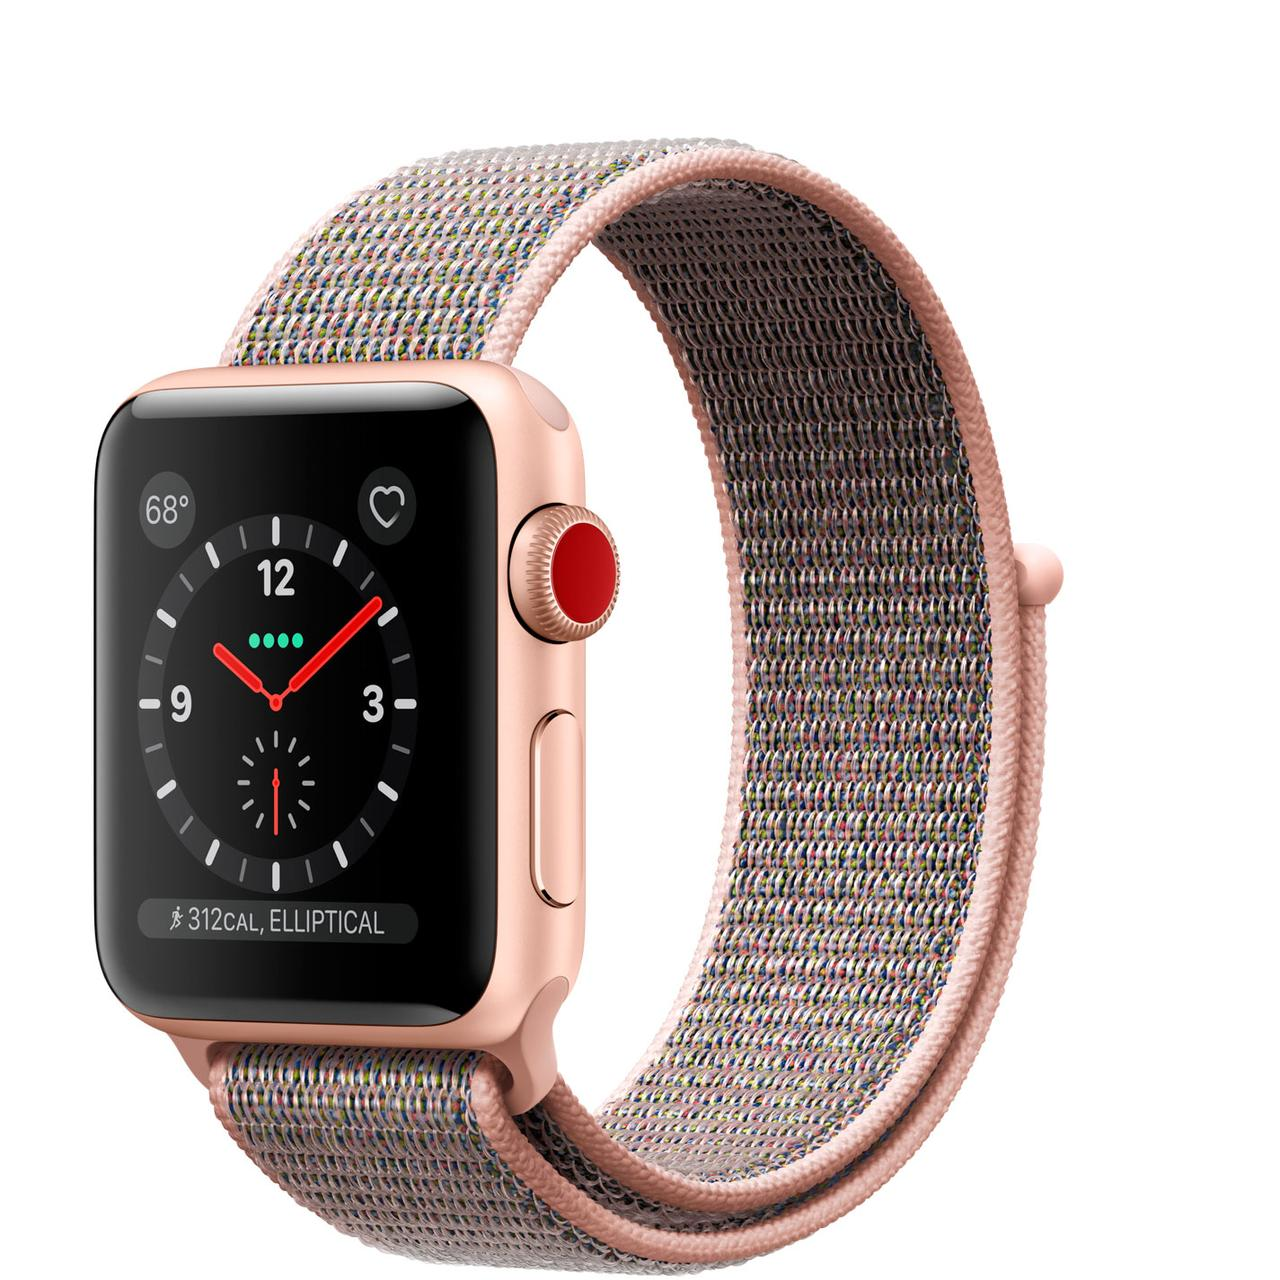 Apple Watch Series 3 GPS + Cellular 42mm Gold Aluminum with Pink Sand Sport Loop (MQK72)